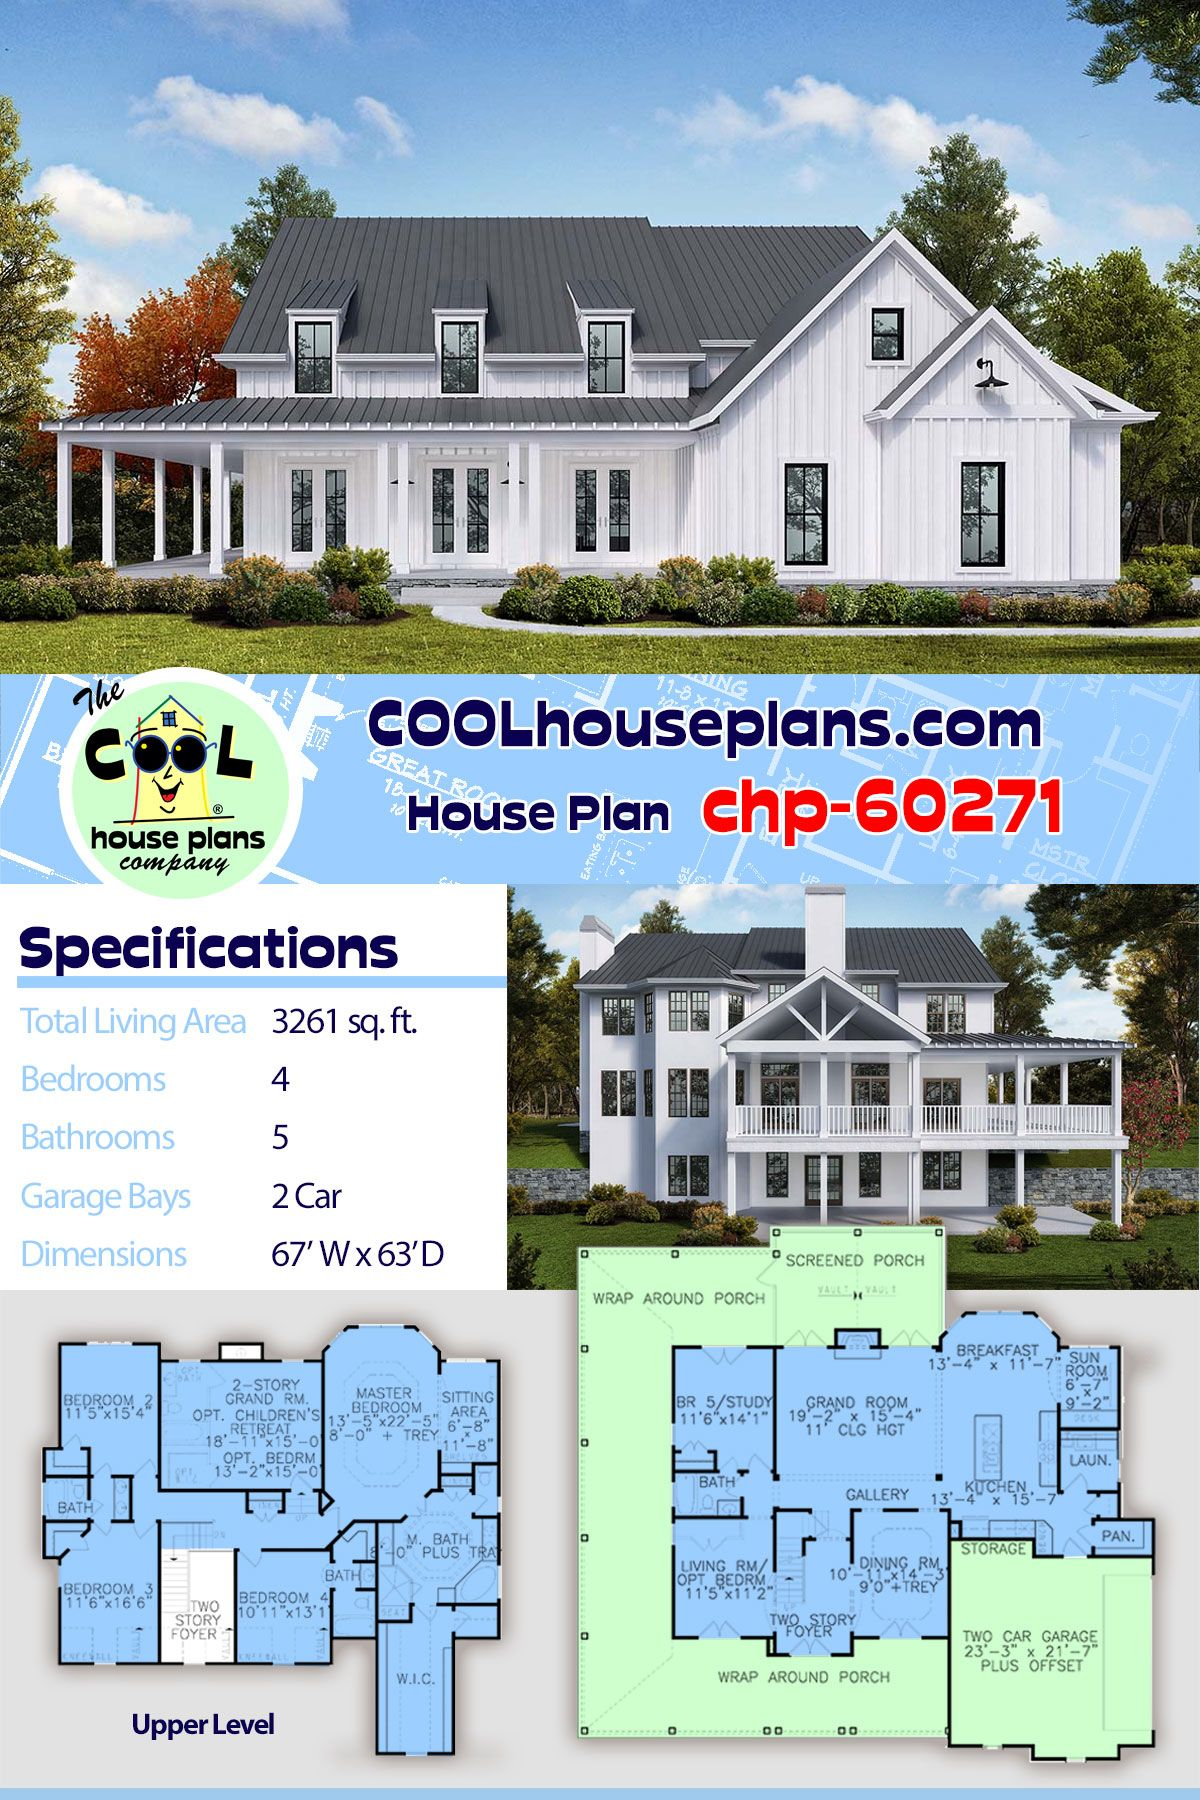 Southern Style House Plan 97654 With 4 Bed 5 Bath 2 Car Garage Farmhouse Plans House Plans Farmhouse Style Kitchen Decor